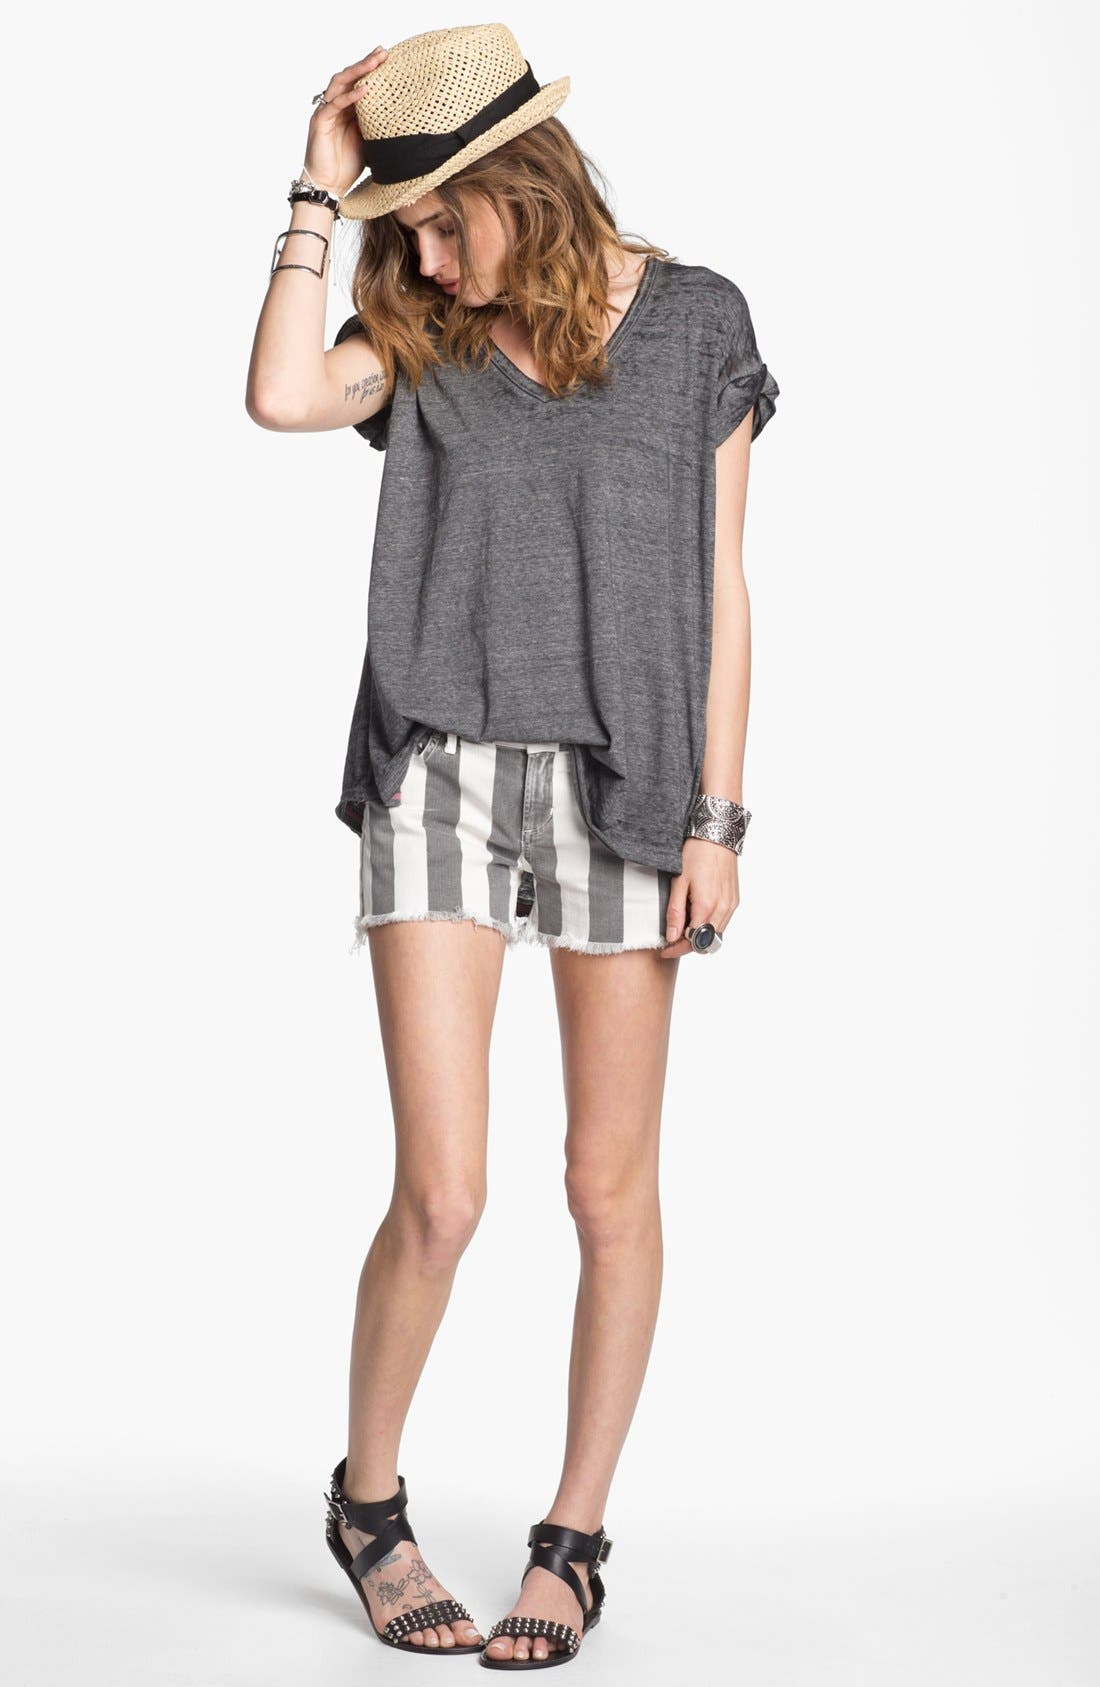 Main Image - Free People V-Neck Burnout Tee & Citizens of Humanity Cutoff Shorts